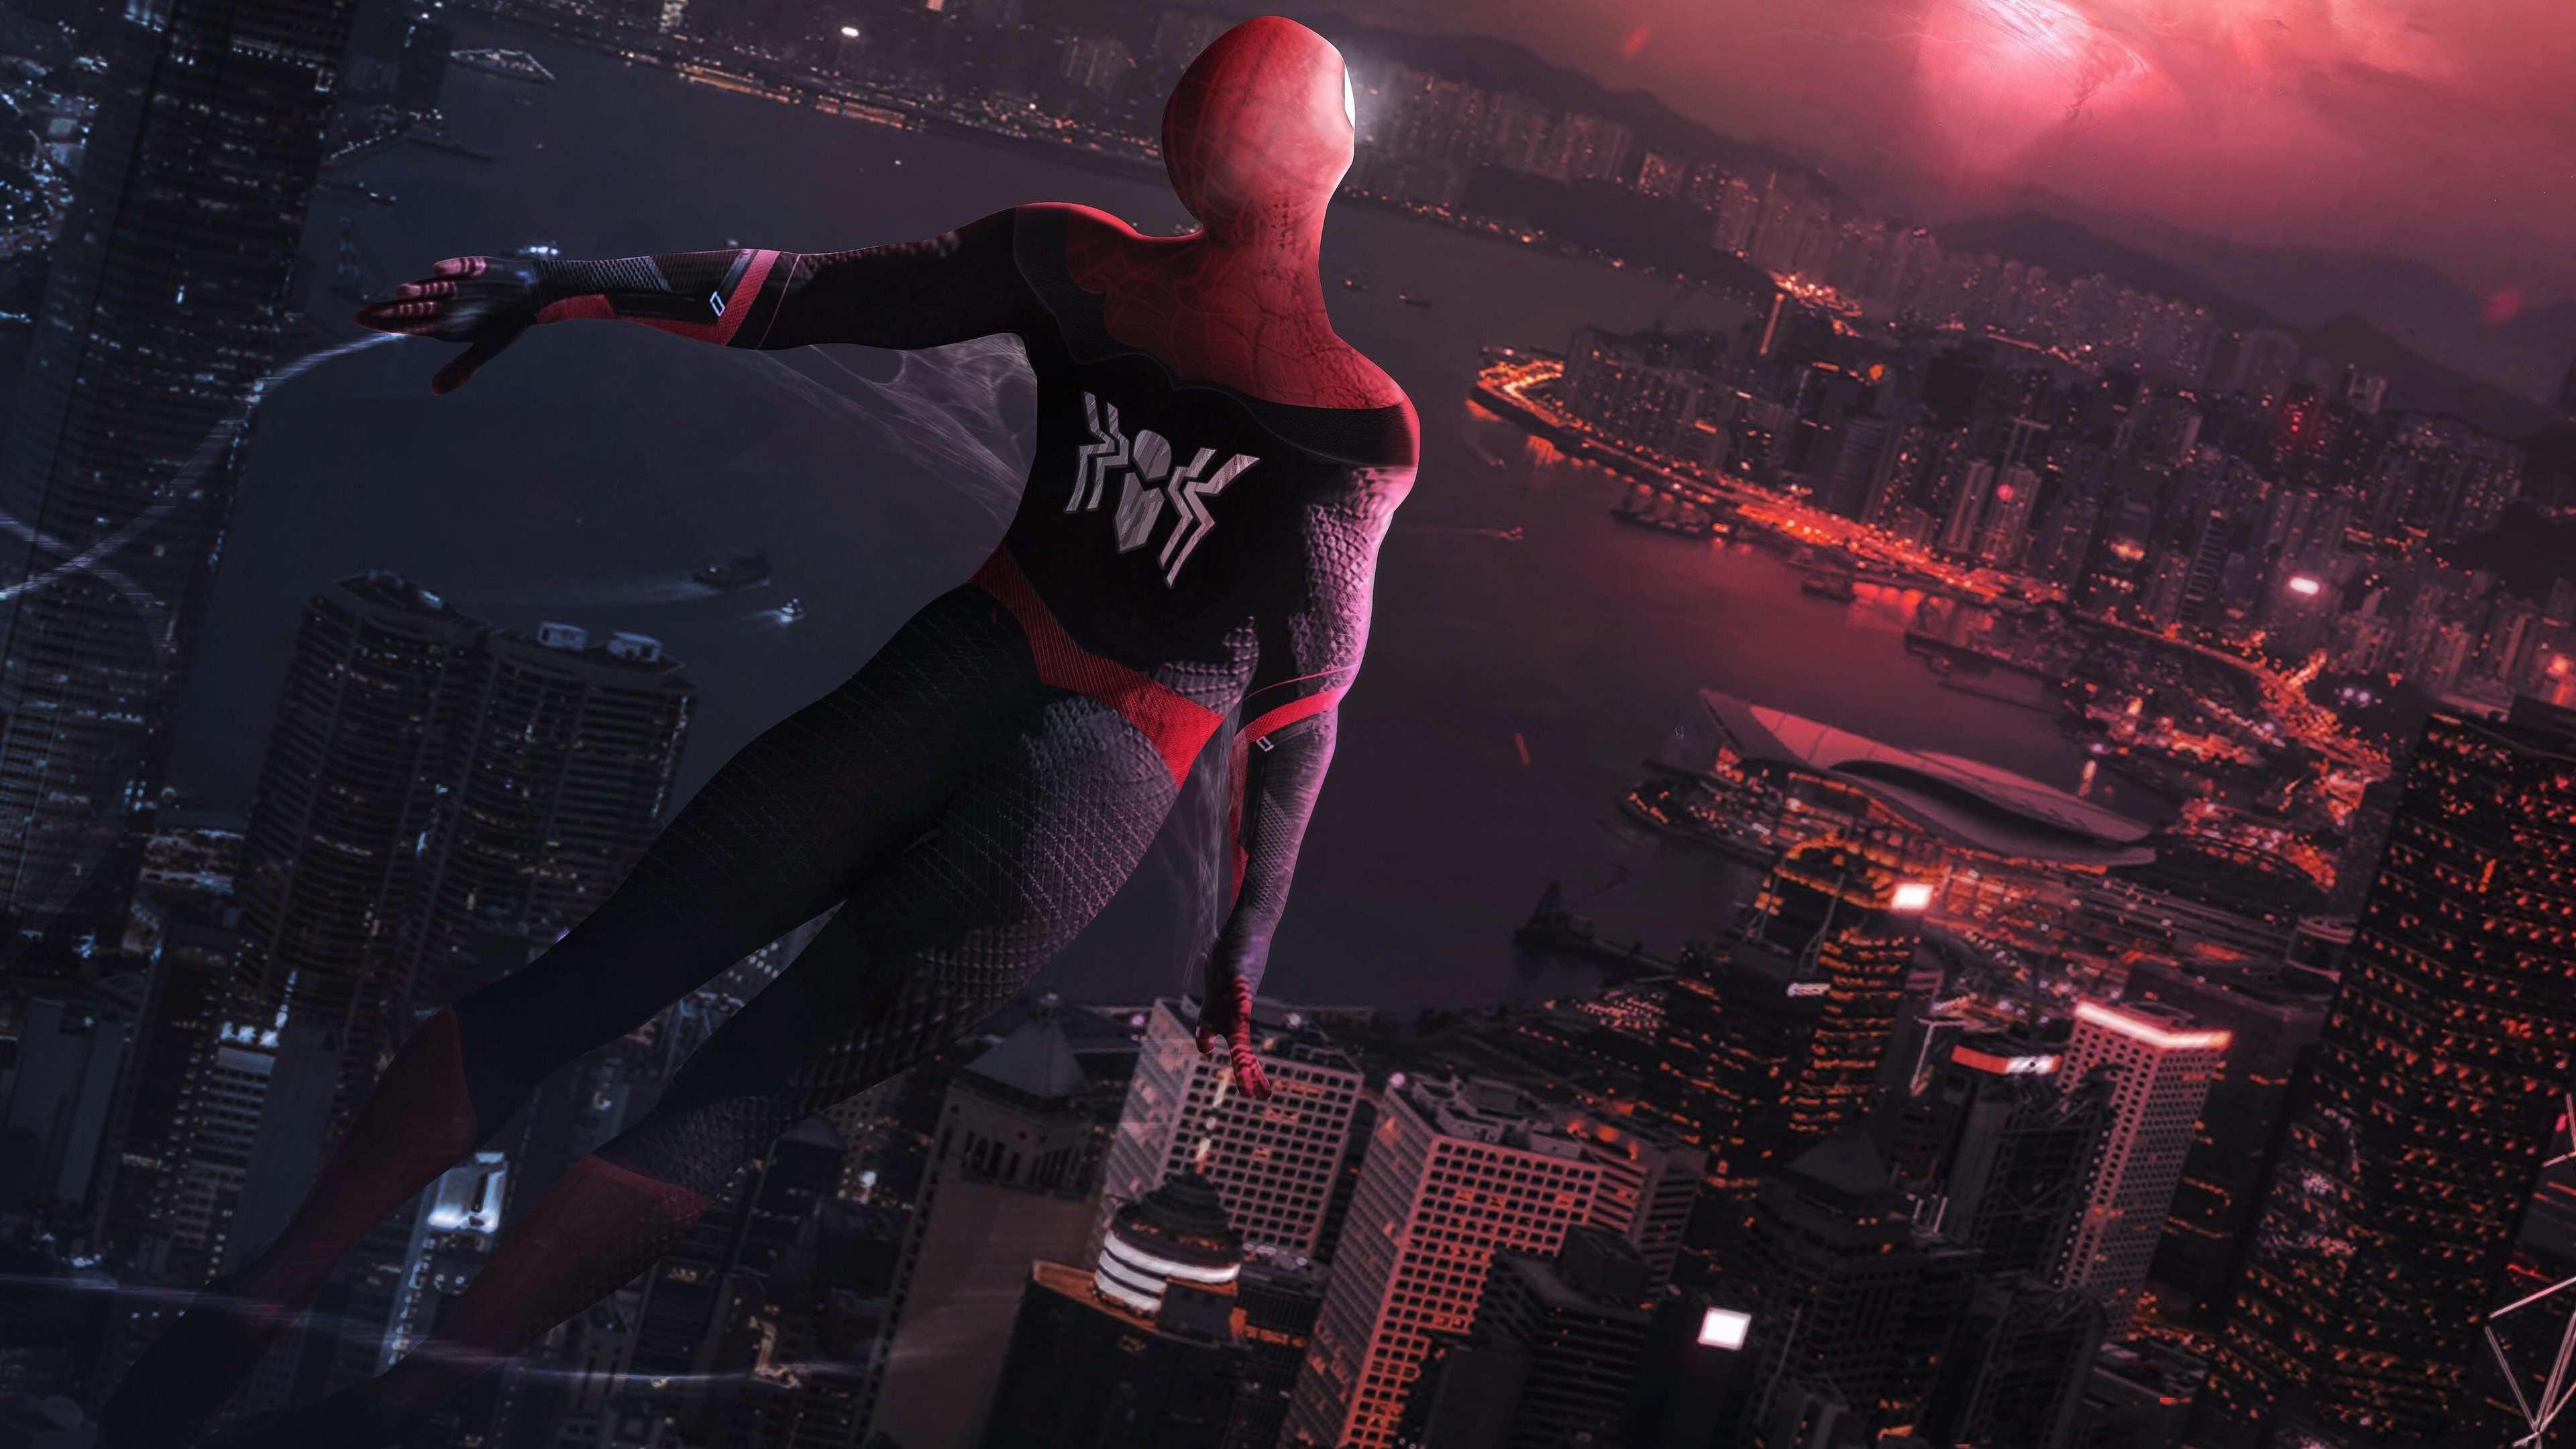 spiderman far away 4k 1547936619 - Spiderman Far Away 4k - superheroes wallpapers, spiderman wallpapers, hd-wallpapers, digital art wallpapers, deviantart wallpapers, artwork wallpapers, artist wallpapers, 4k-wallpapers